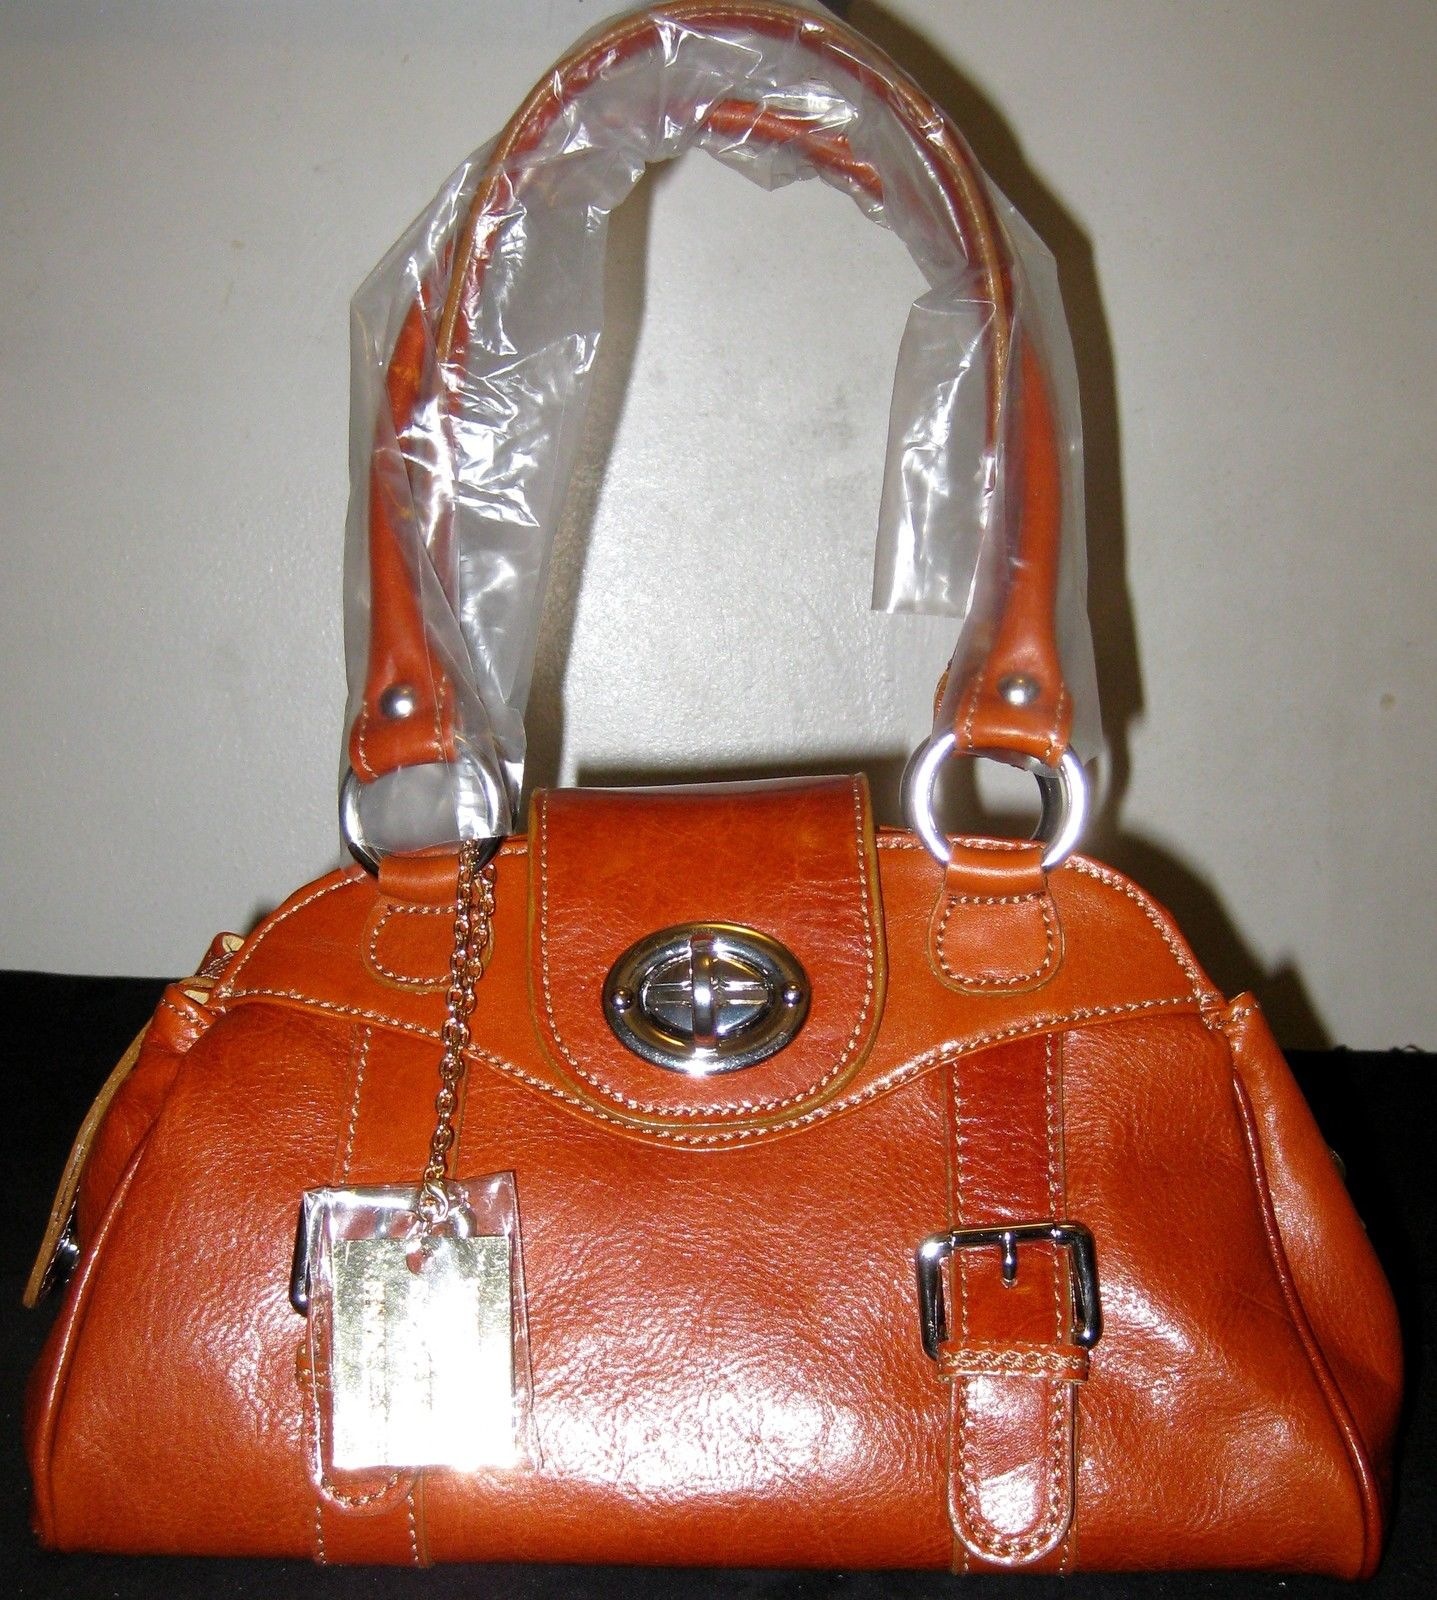 100% Italy Leather Shoulder Bags-Tower Bridge Handbags Orange Color.